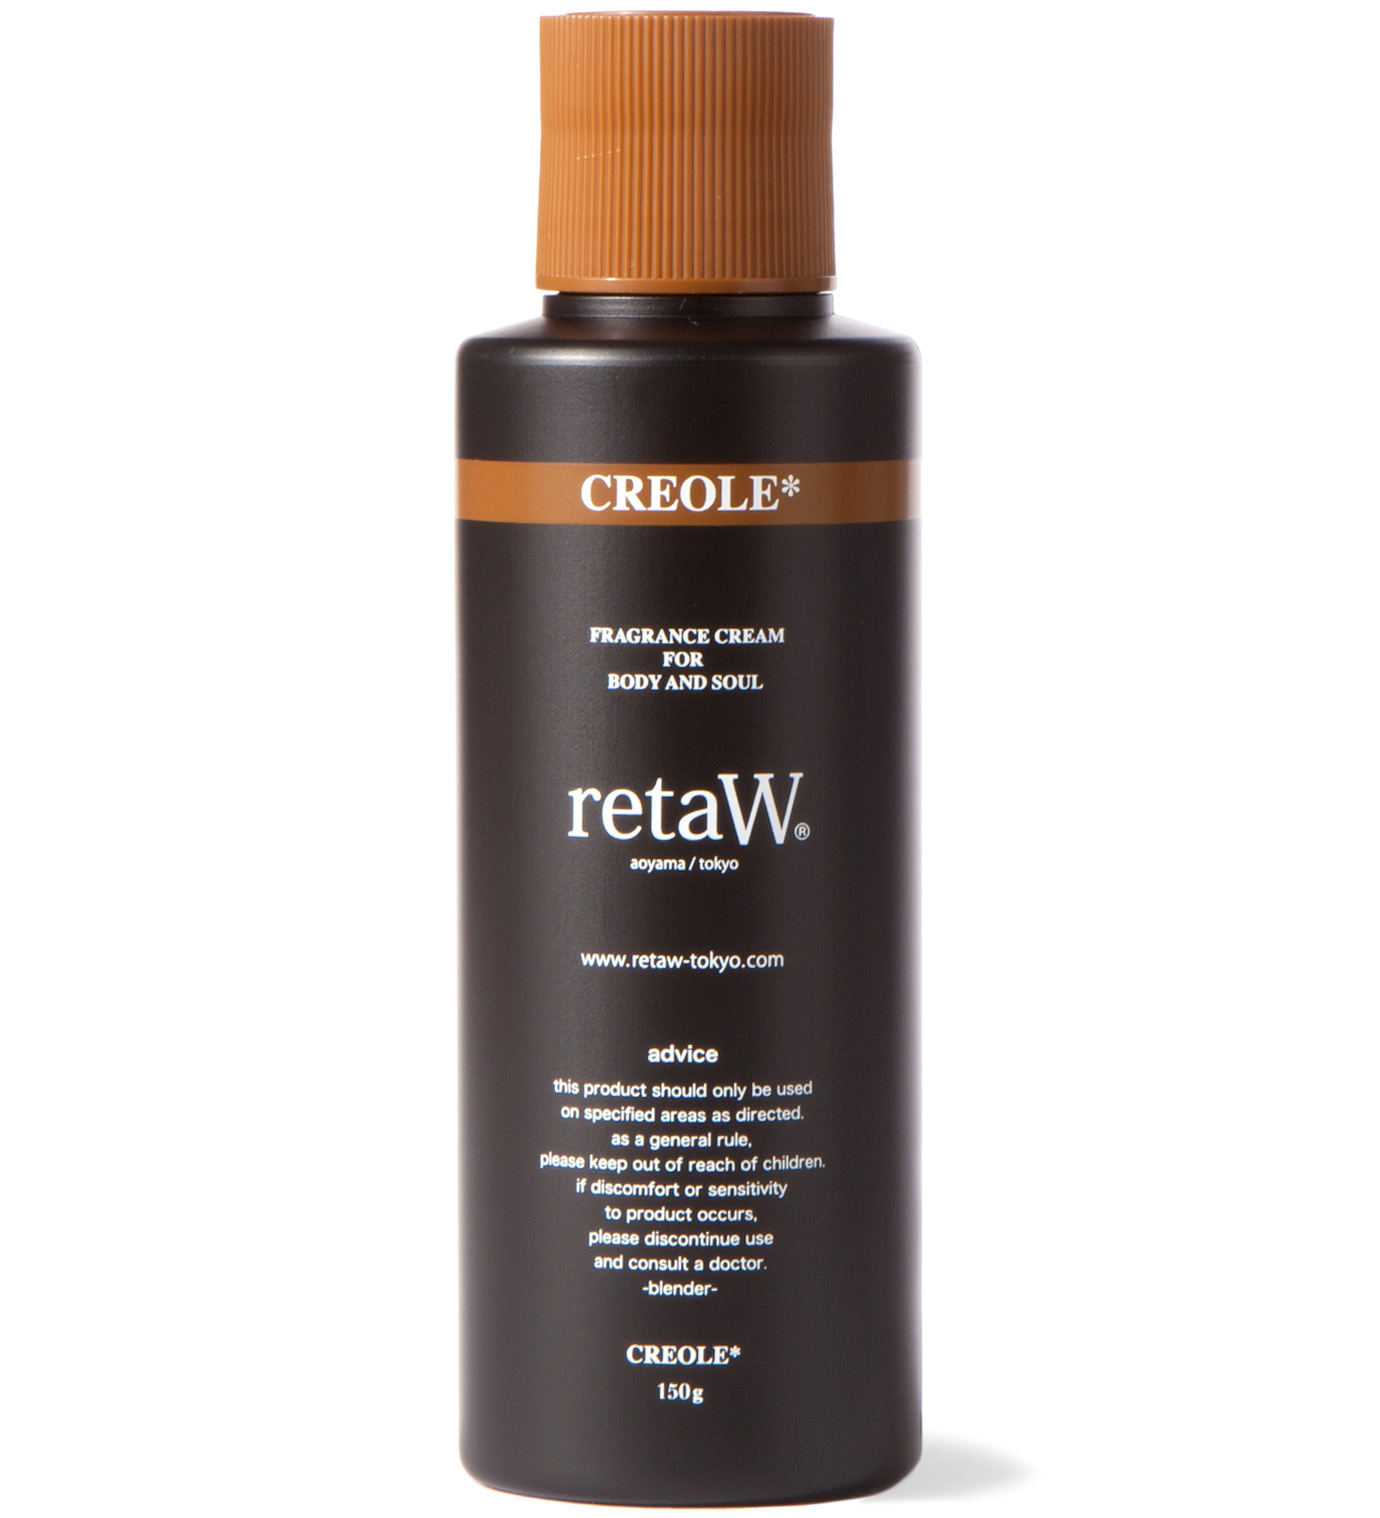 retaW Creole Fragrance Body Cream